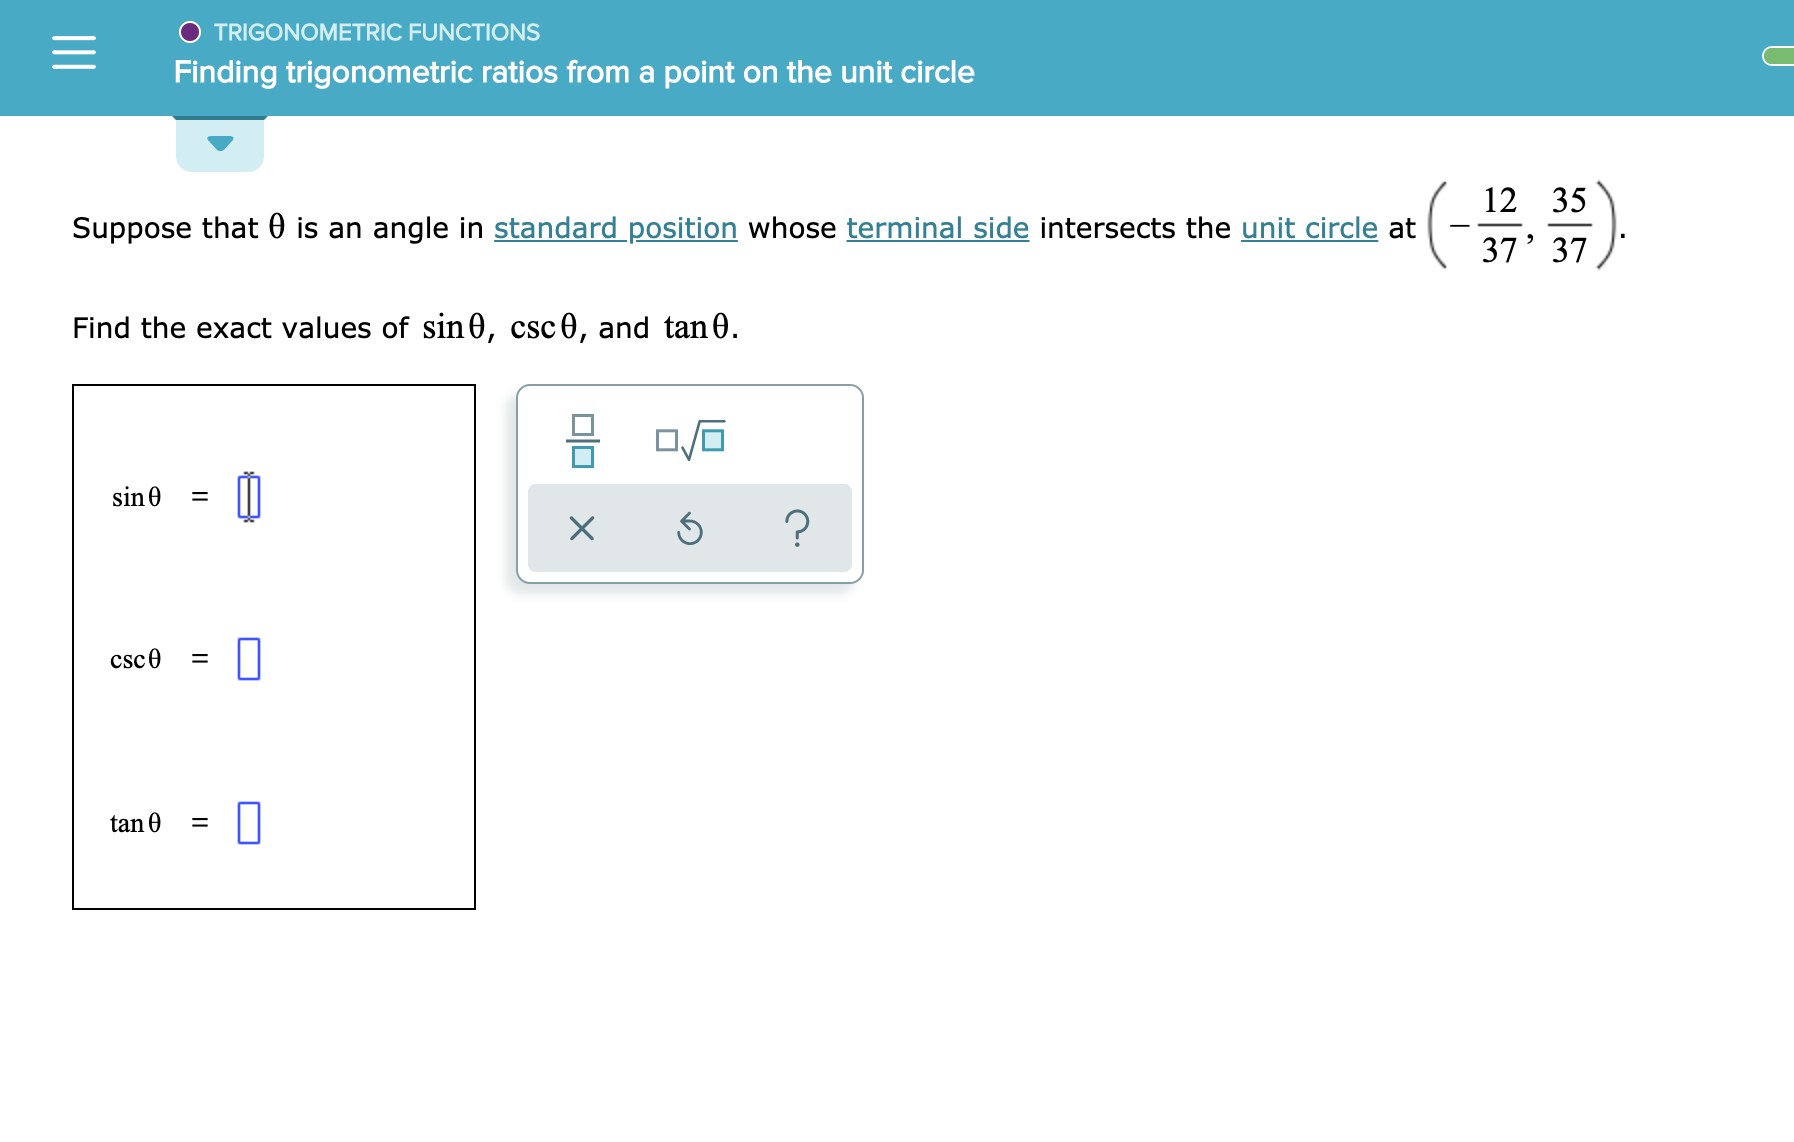 TRIGONOMETRIC FUNCTIONS Finding trigonometric ratios from a point on the unit circle 12 35 Suppose that 0 is an angle in standard position whose terminal side intersects the unit circle at 37' 37 Find the exact values of sin0, csc0, and tan0. sin 0 ? csc0 tan 0 L